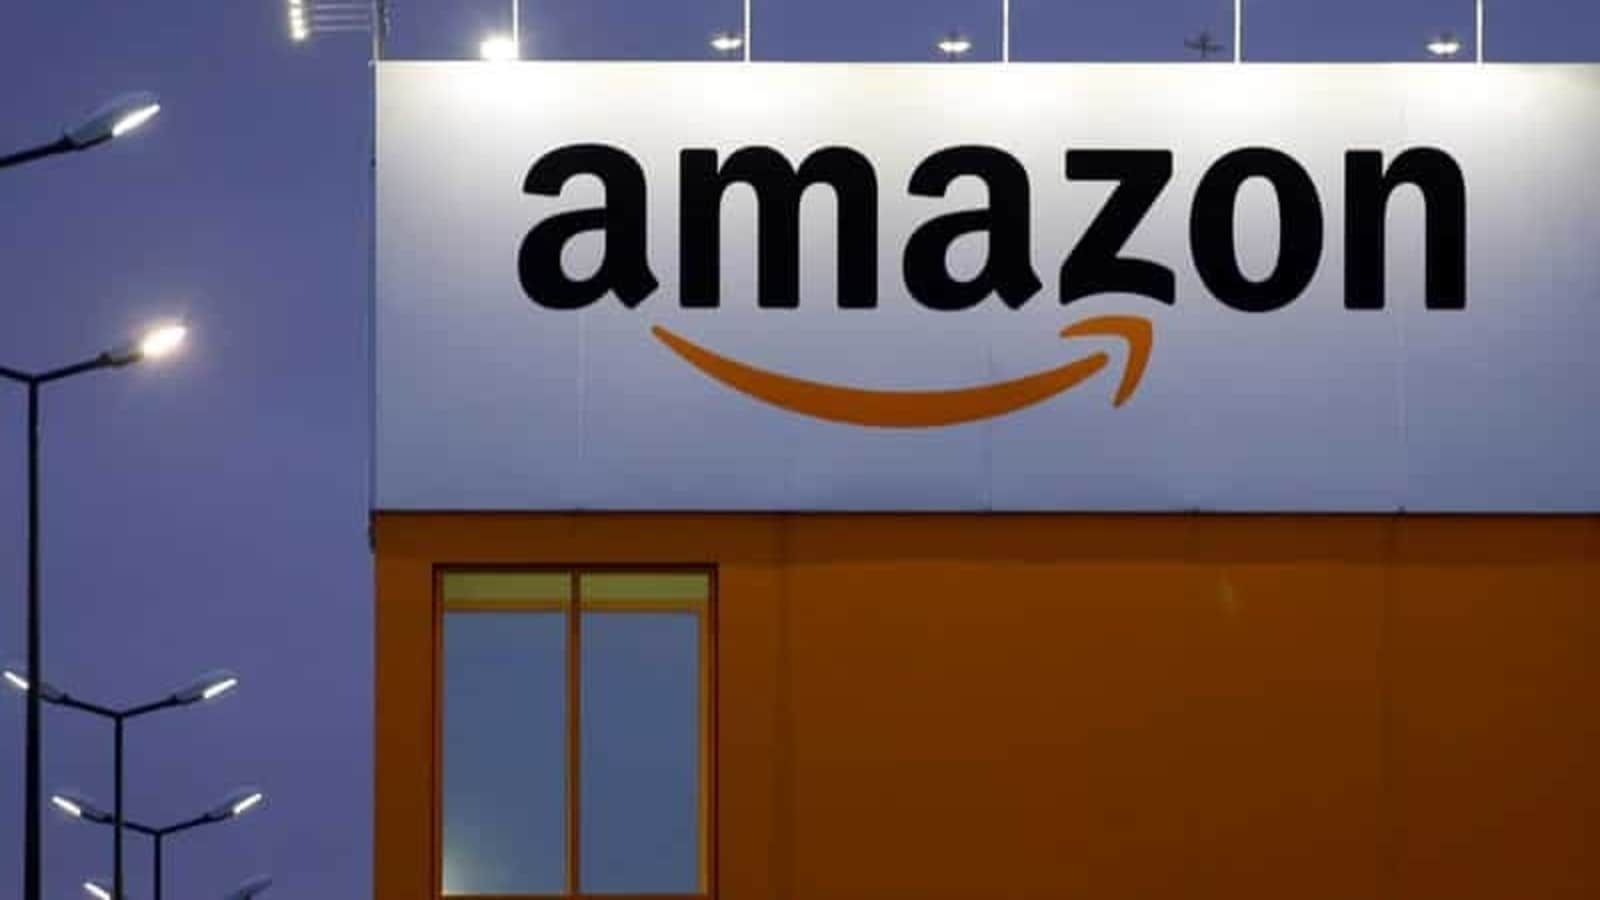 Amazon reveals India's hottest heat as Walmart fights deep